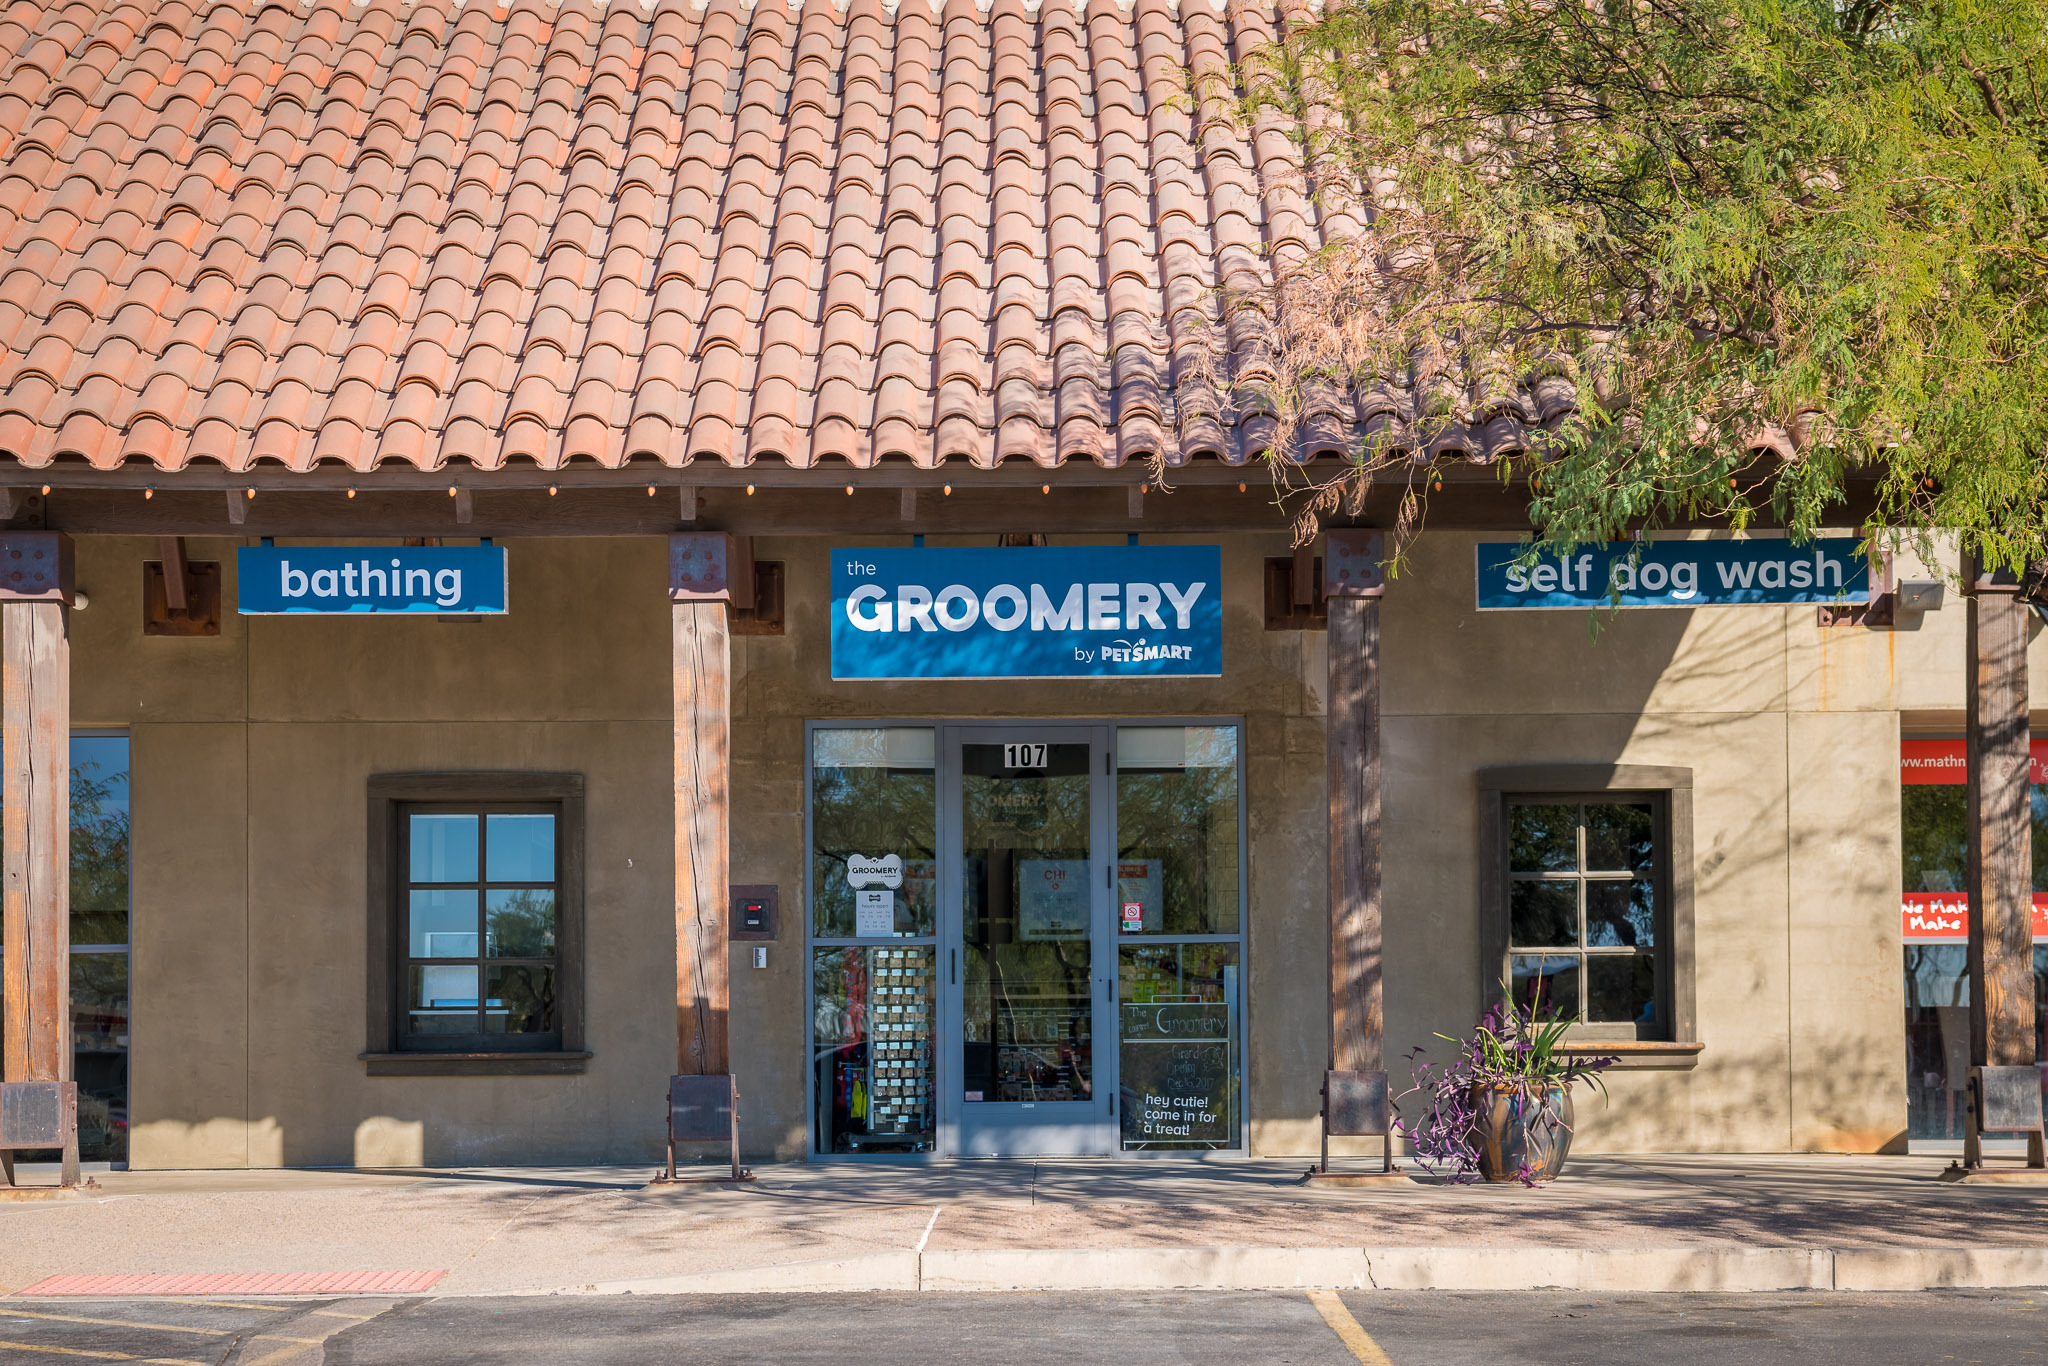 Petsmart continues to expand its new grooming store concept by petsmart is introducing the groomery as pet care spending continues to solutioingenieria Gallery